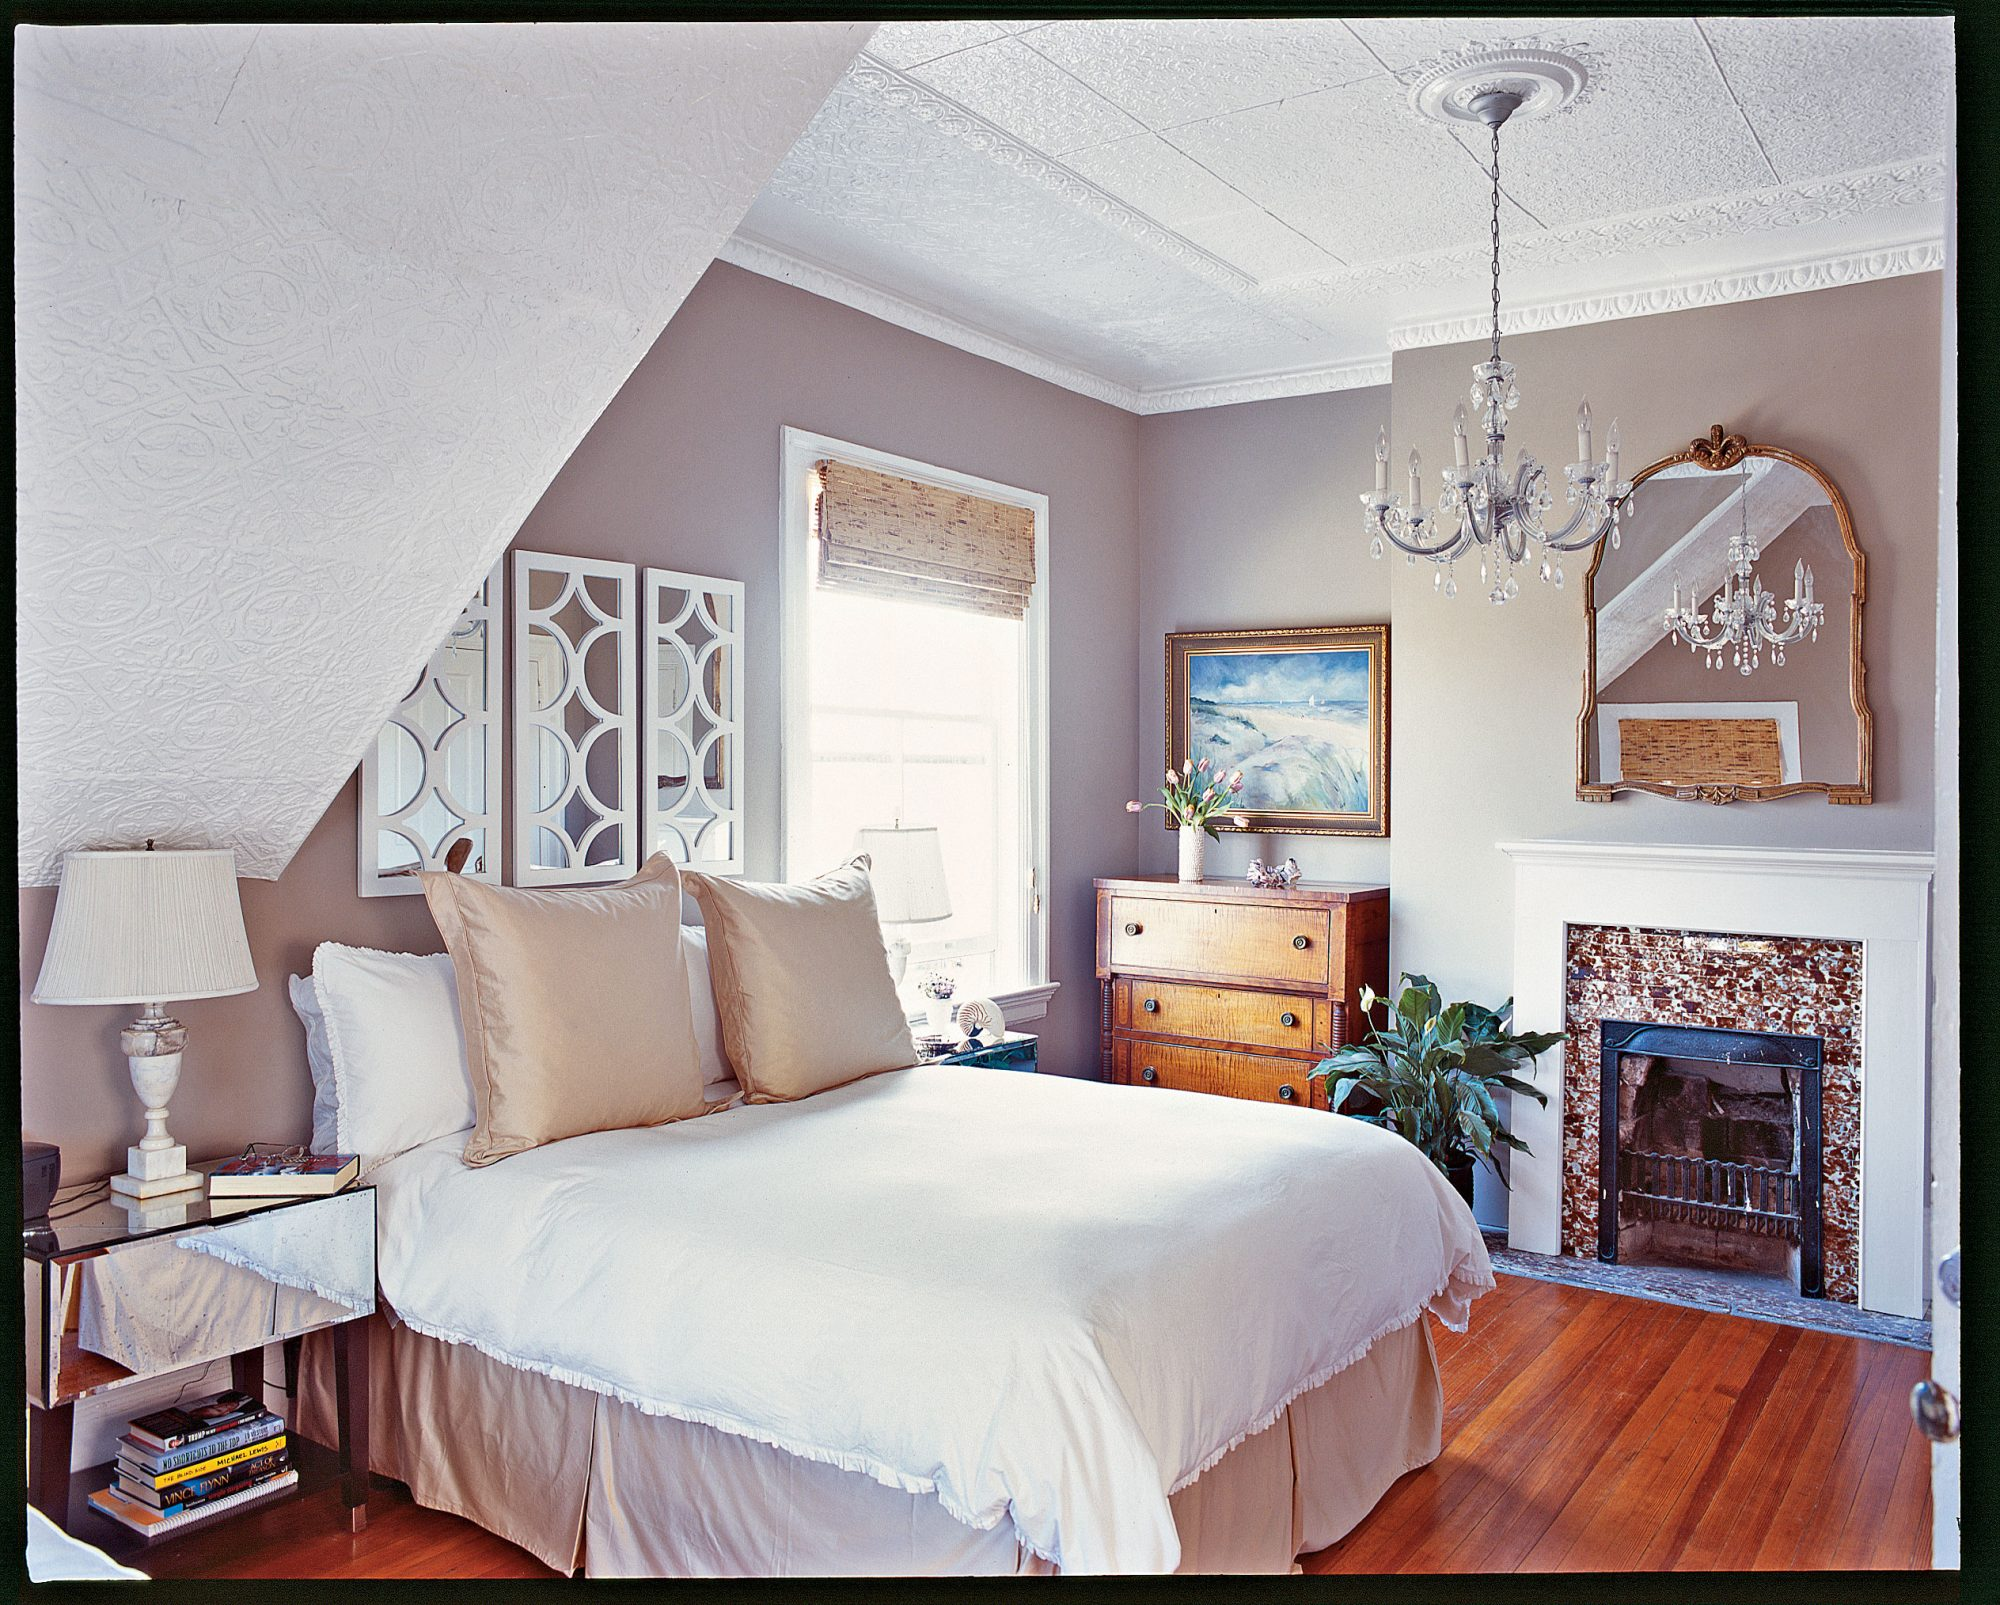 A lack of knickknacks, soft neutrals, and multiple mirrored surfaces make this tranquil master bedroom seem larger than its actual size. A hazy gray wall color is a chic alternative to bright white.